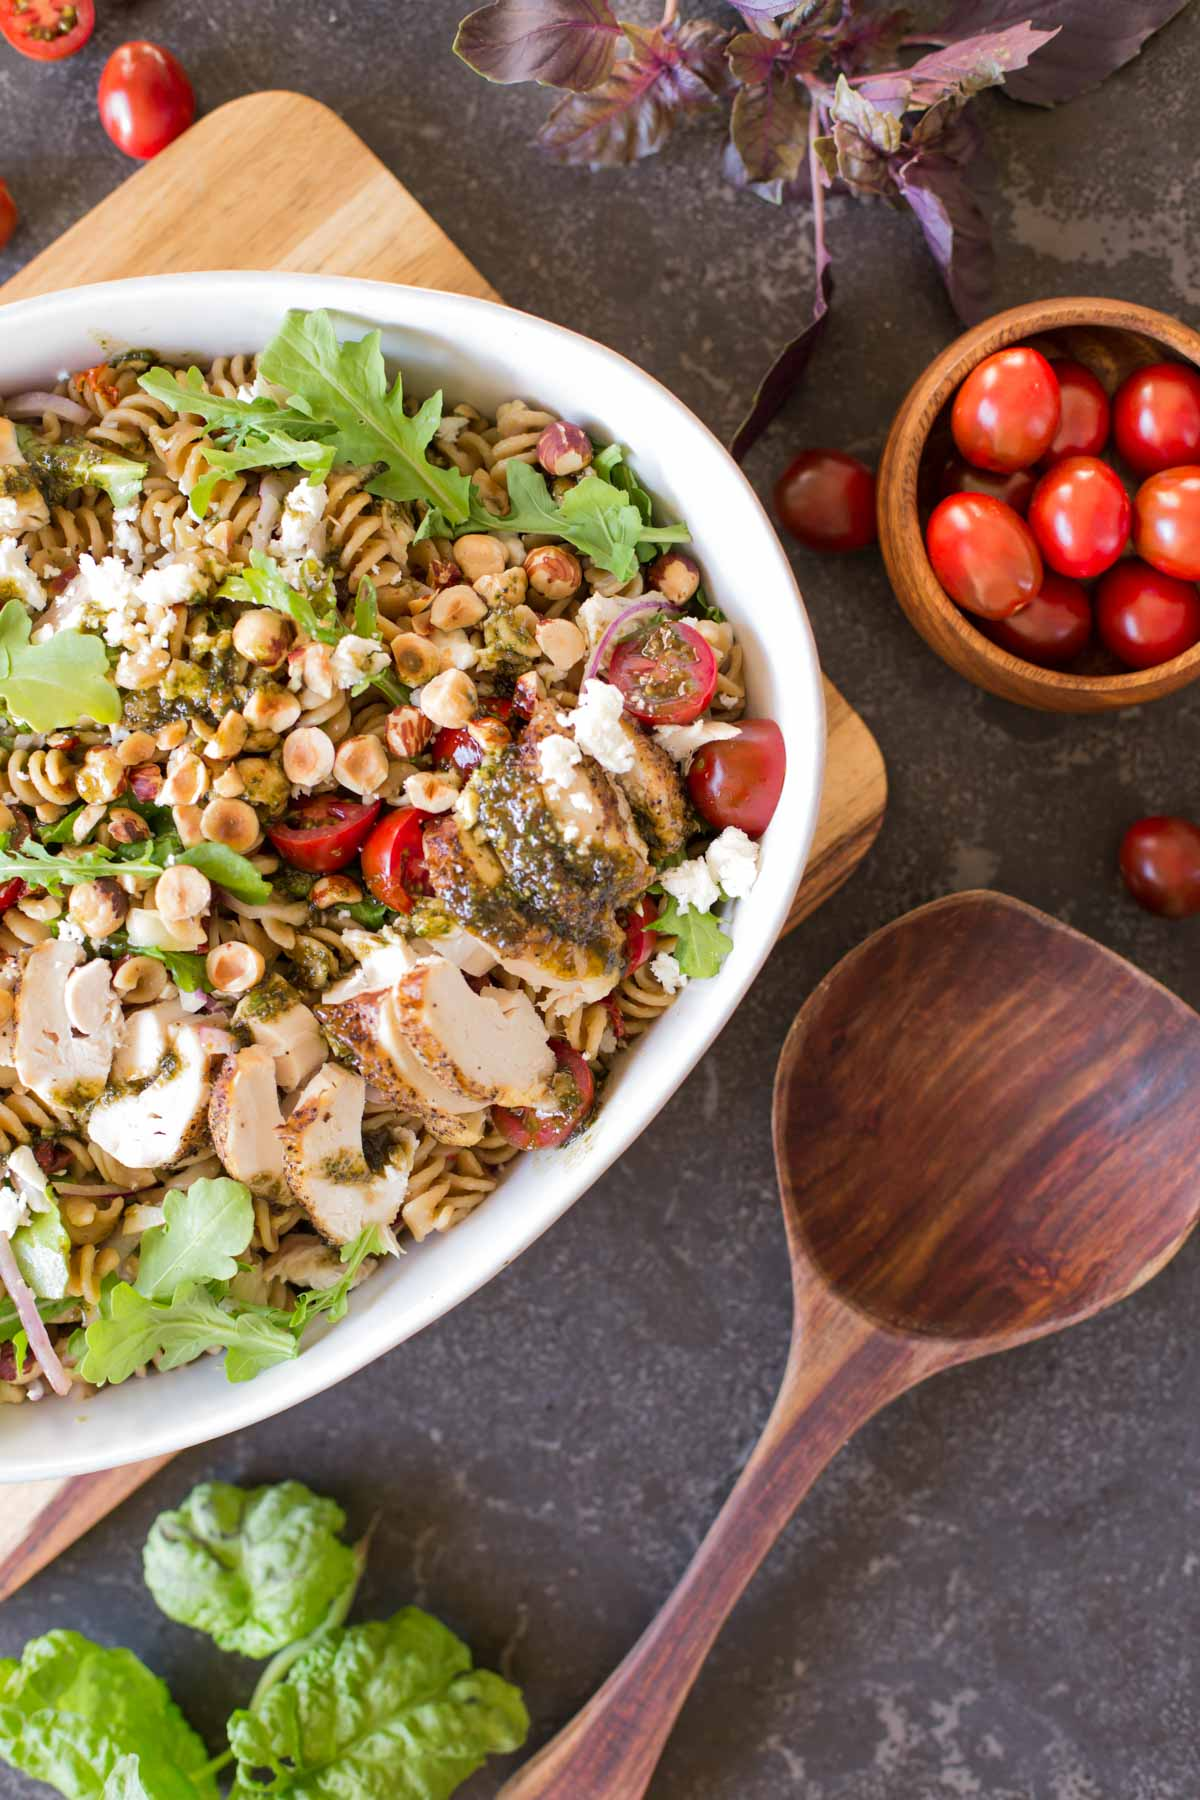 Whole Wheat Pasta Salad With Honey Basil Balsamic Vinaigrette in a large serving bowl with a wooden spoon next to it, as well as a small wood bowl of grape tomatoes.